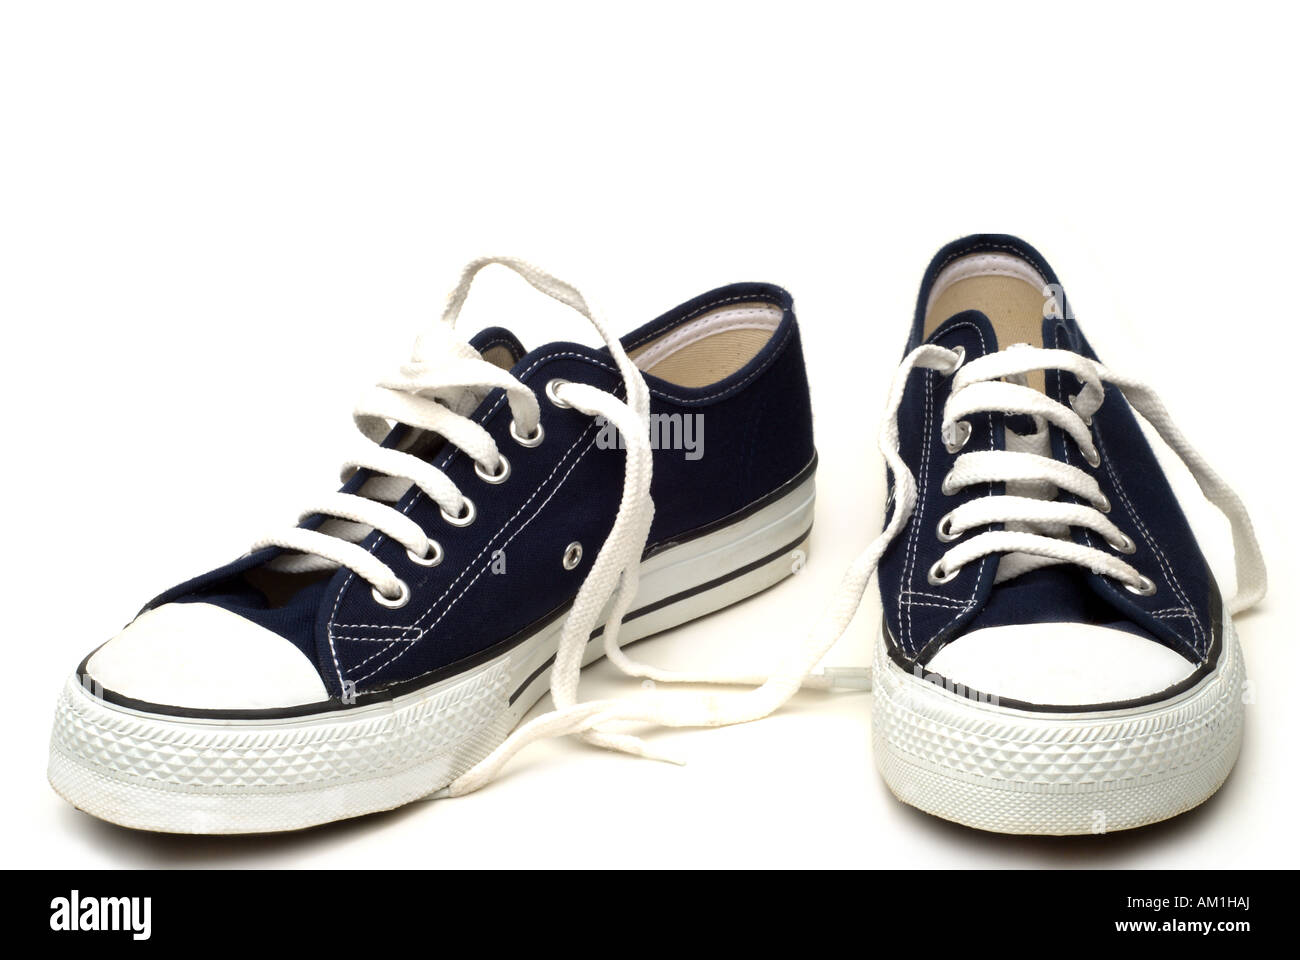 Pair of blue and white classic vintage sneakers shoes isolated - Stock Image